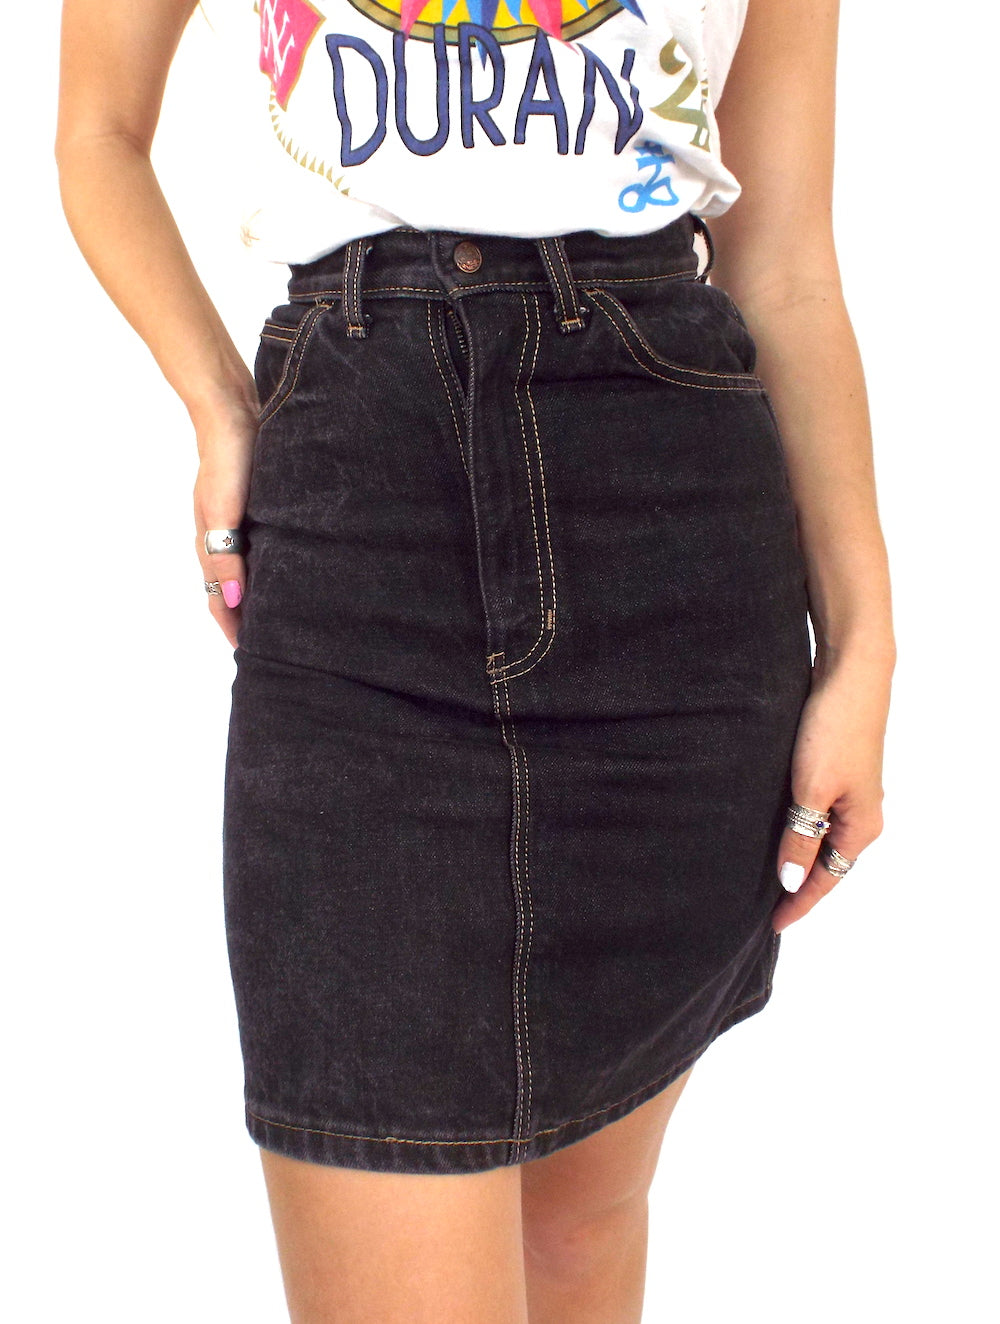 Vintage 90s Black High-Waist Denim Pencil Skirt -- Size 26